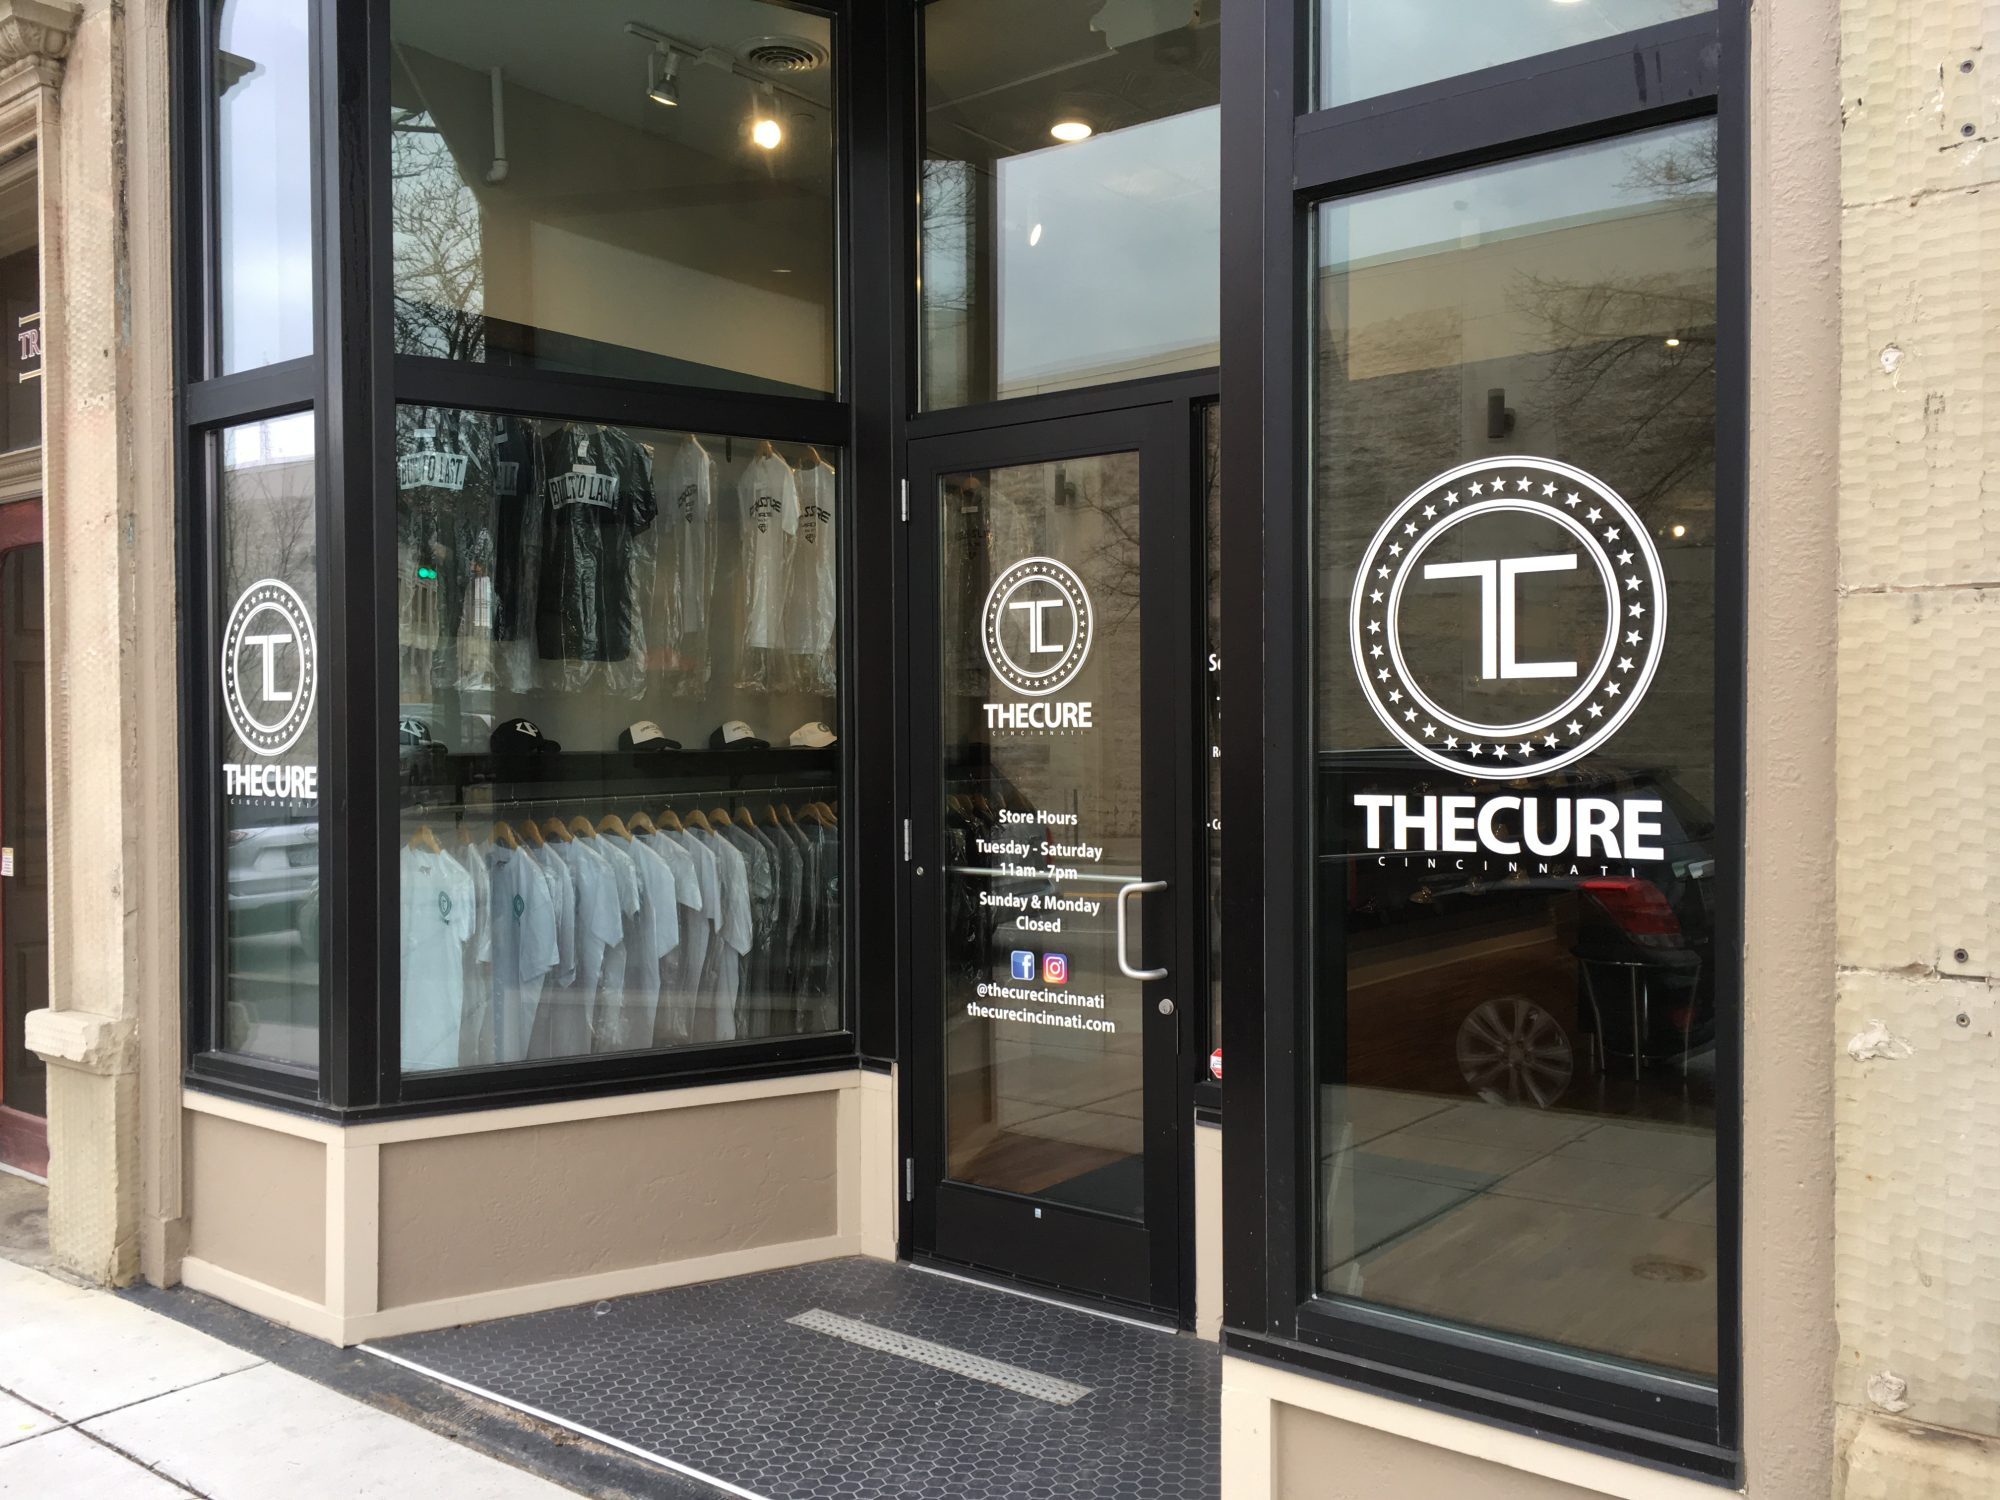 8760c8dadb4c The Cure brings Style and Sneakerheads to Walnut Hills